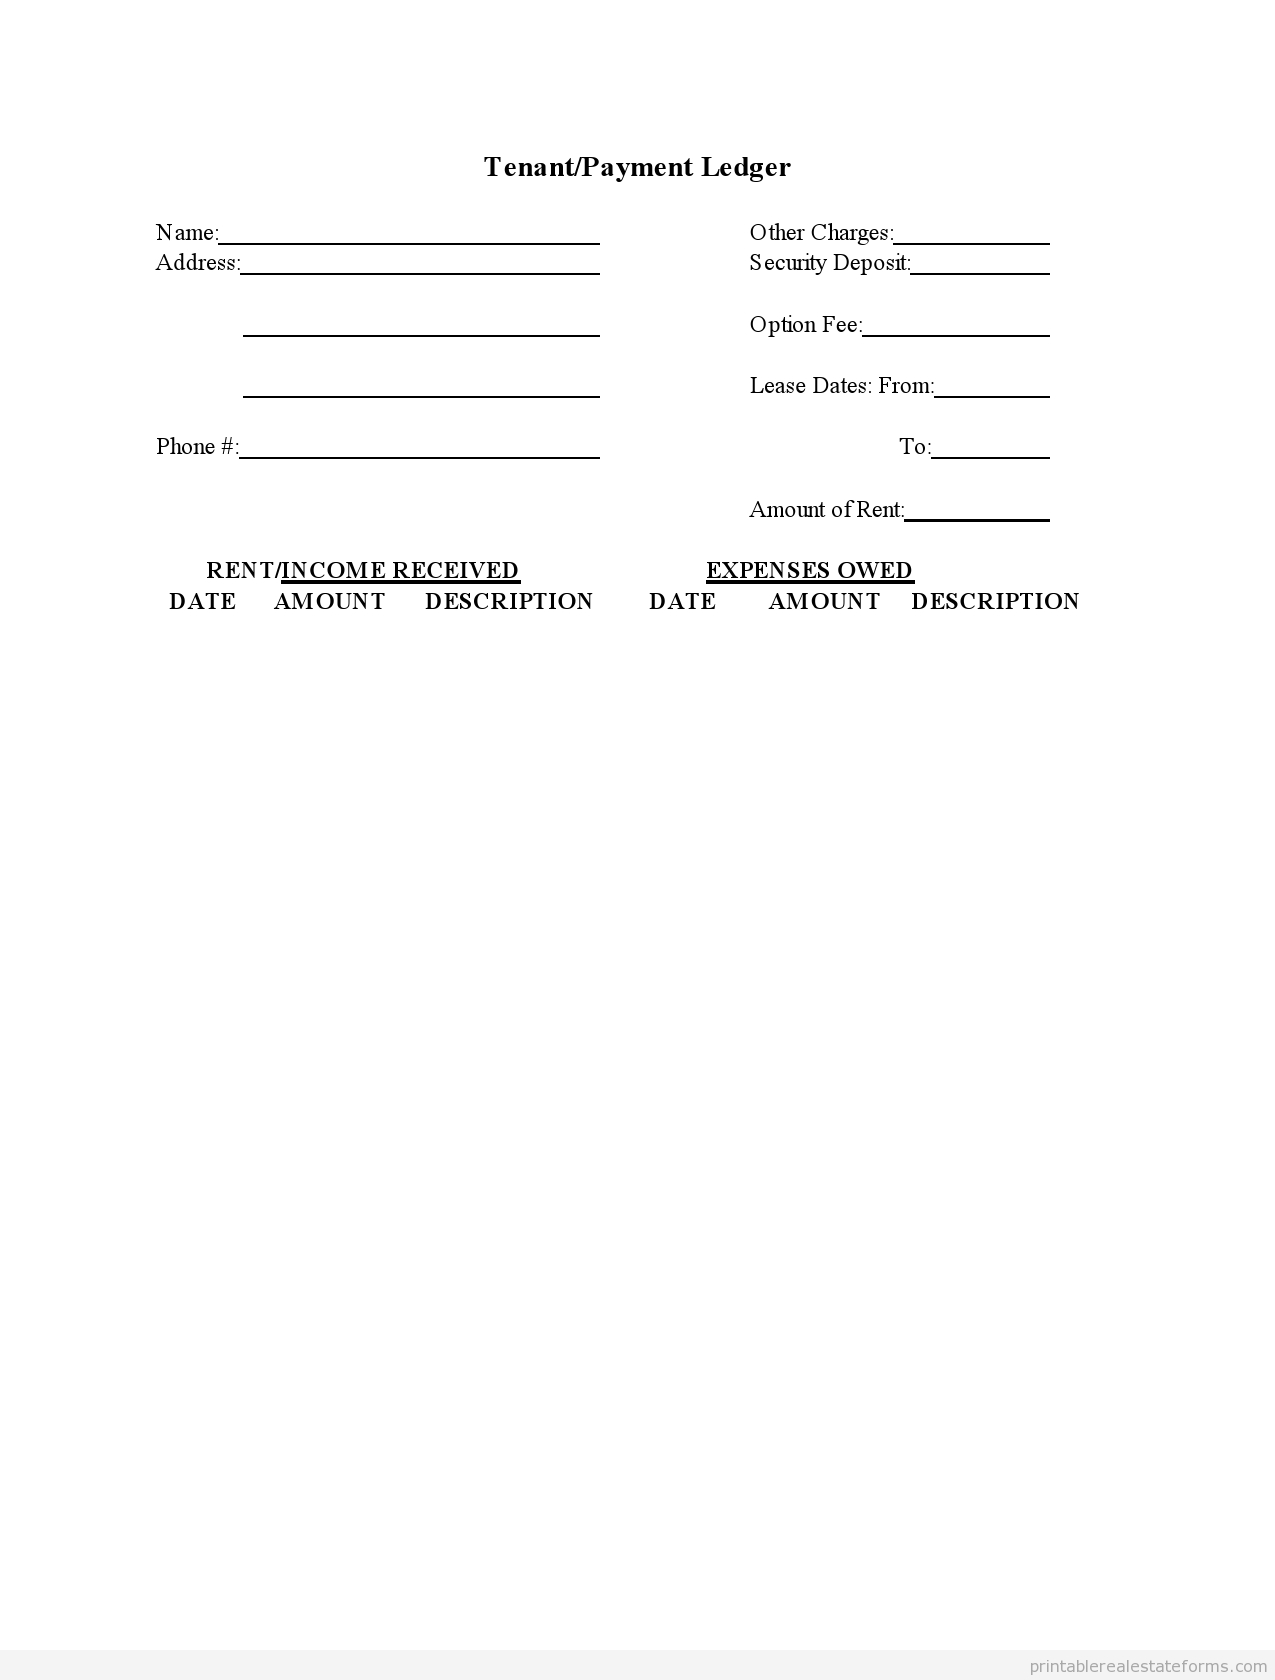 Sample Printable Tenant Payment Ledger Form | Sample Real Estate - Free Printable Rent Ledger